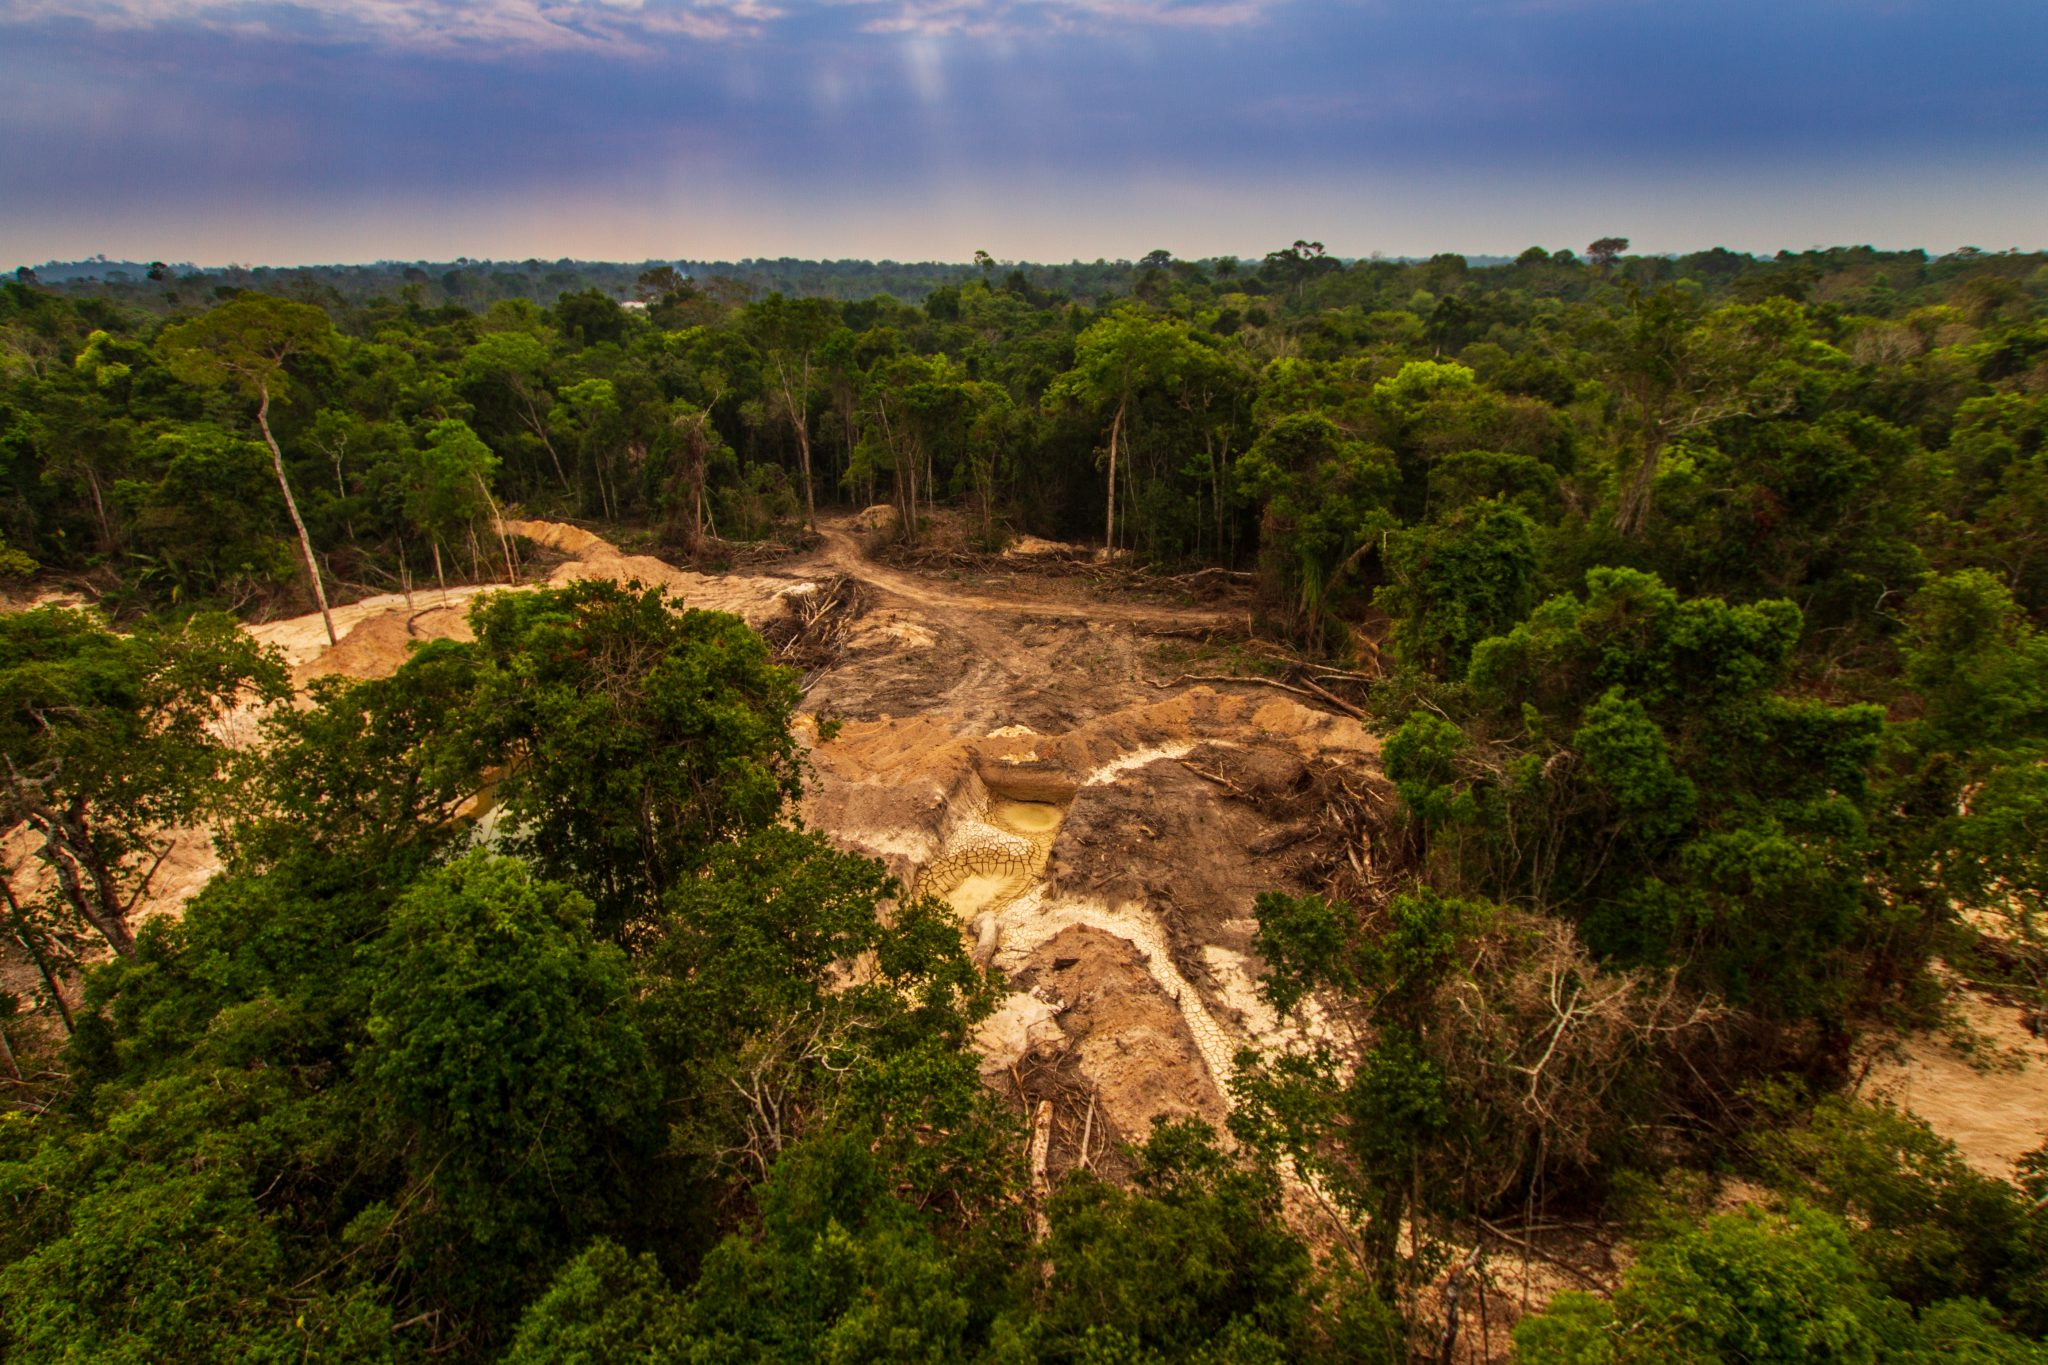 Illegal Mining Causes Deforestation And River Pollution In The Amazon Rainforest Near Menkragnoti Indigenous Land. Pará, Brazil